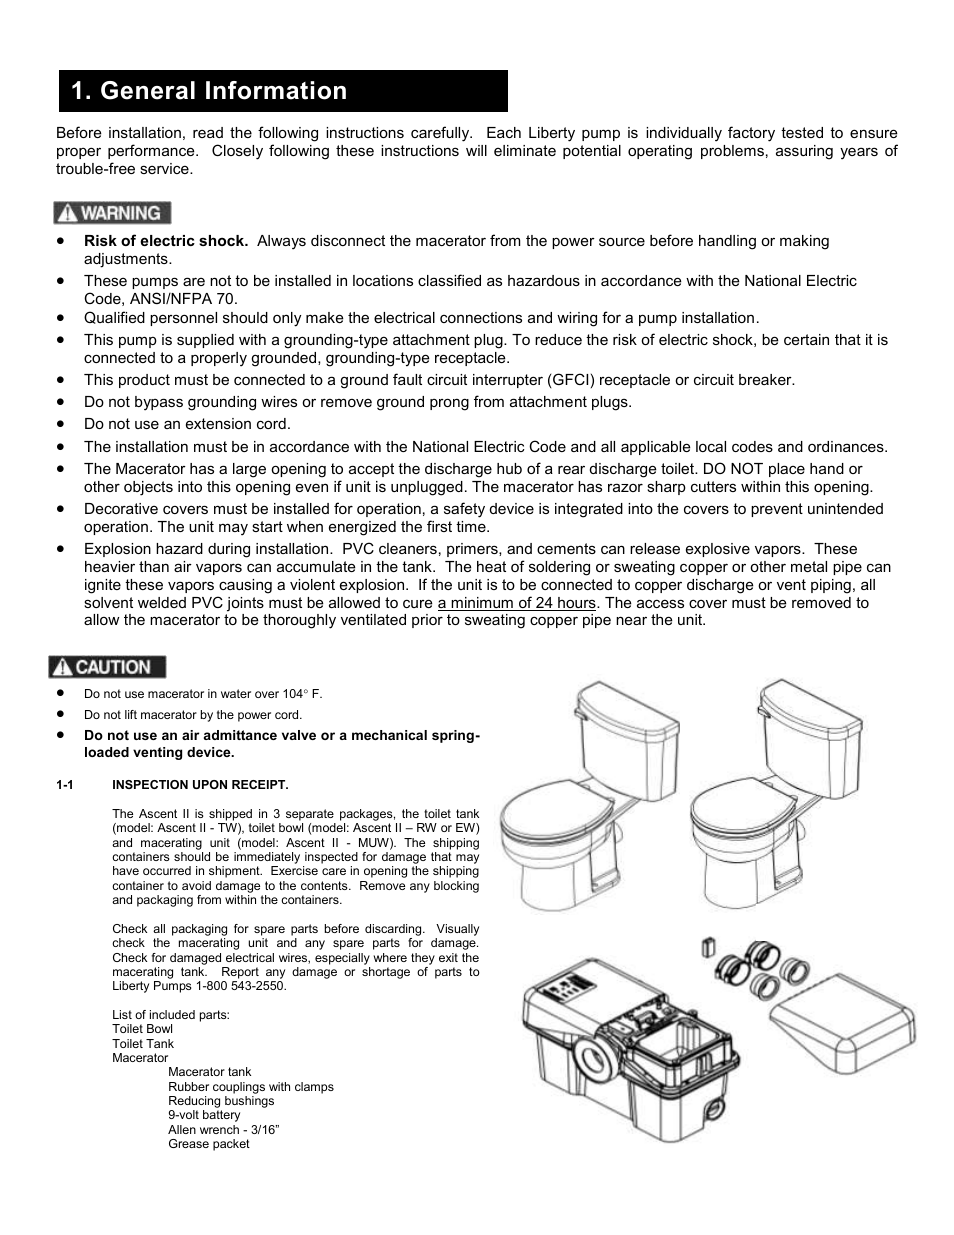 General information Liberty Pumps Ascent II User Manual Page 2 55